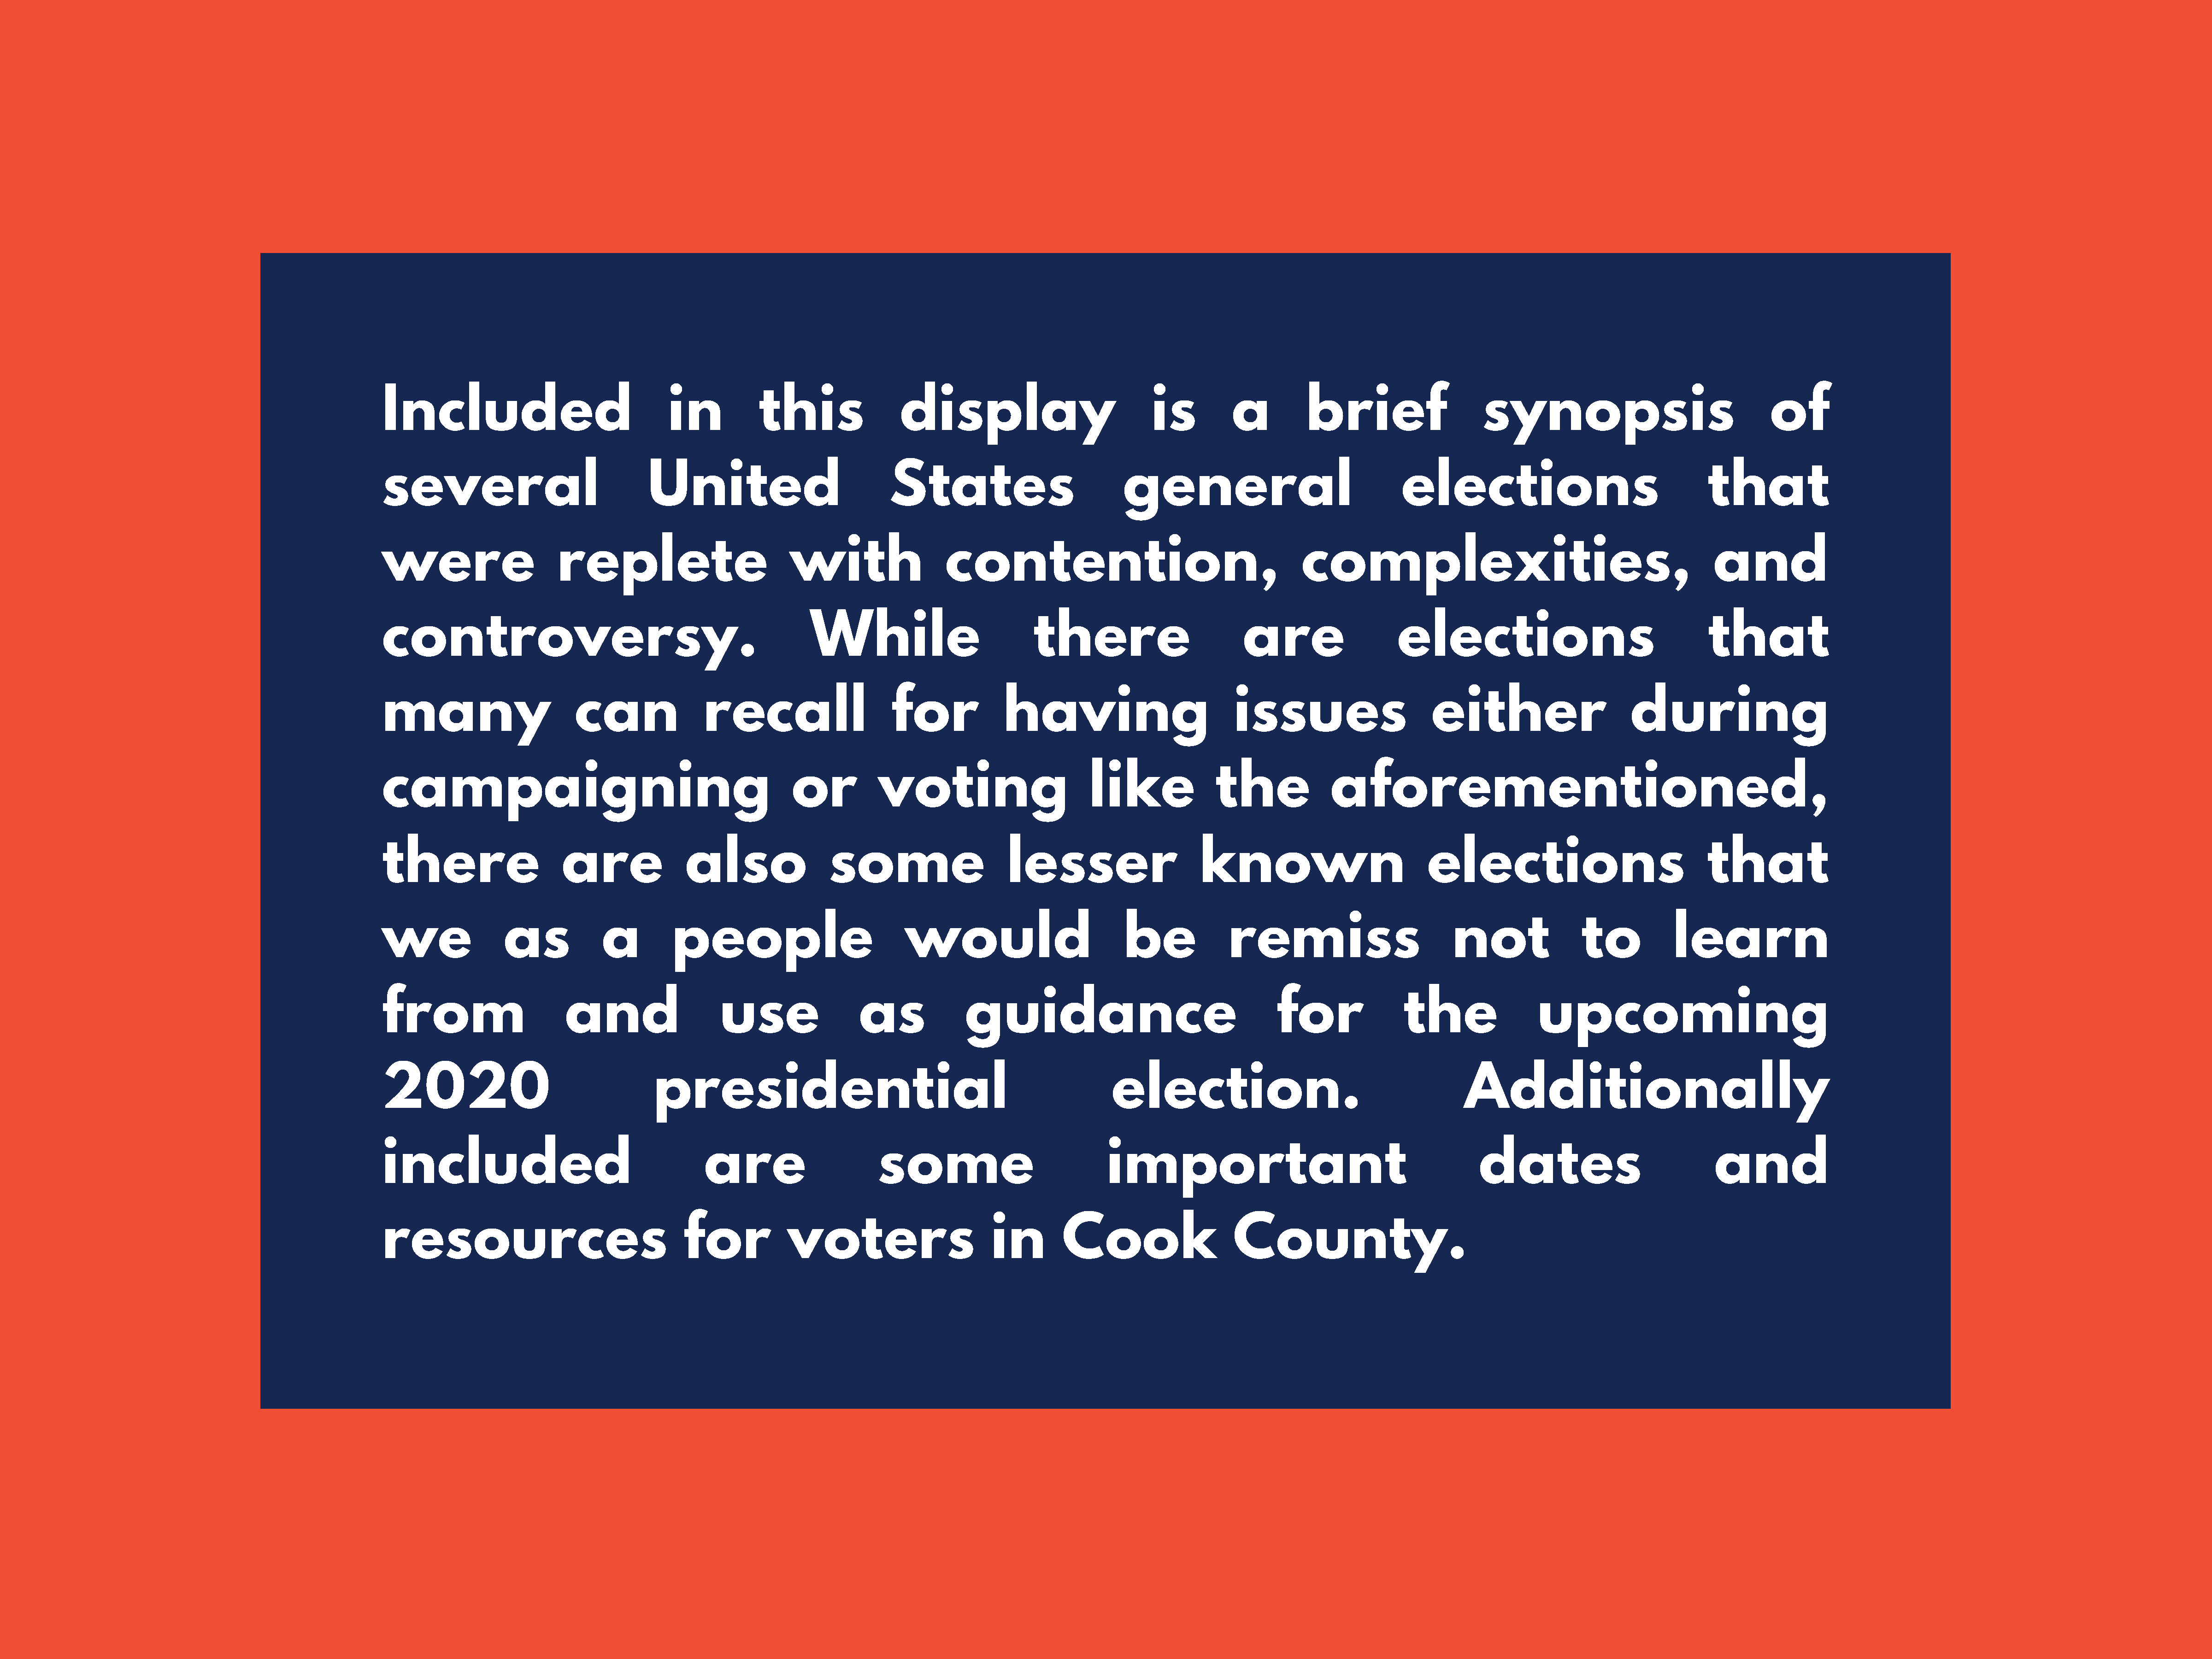 Included in this display is a brief synopsis of several United States general elections that were replete with contention, complexities, and controversy. While there are elections that many can recall for having issues either during campaigning or voting like the aforementioned, there are also some lesser known elections that we as a people would be remiss not to learn from and use as guidance for the upcoming 2020 presidential election. Additionally included are some important dates and resources for voters in Cook County.